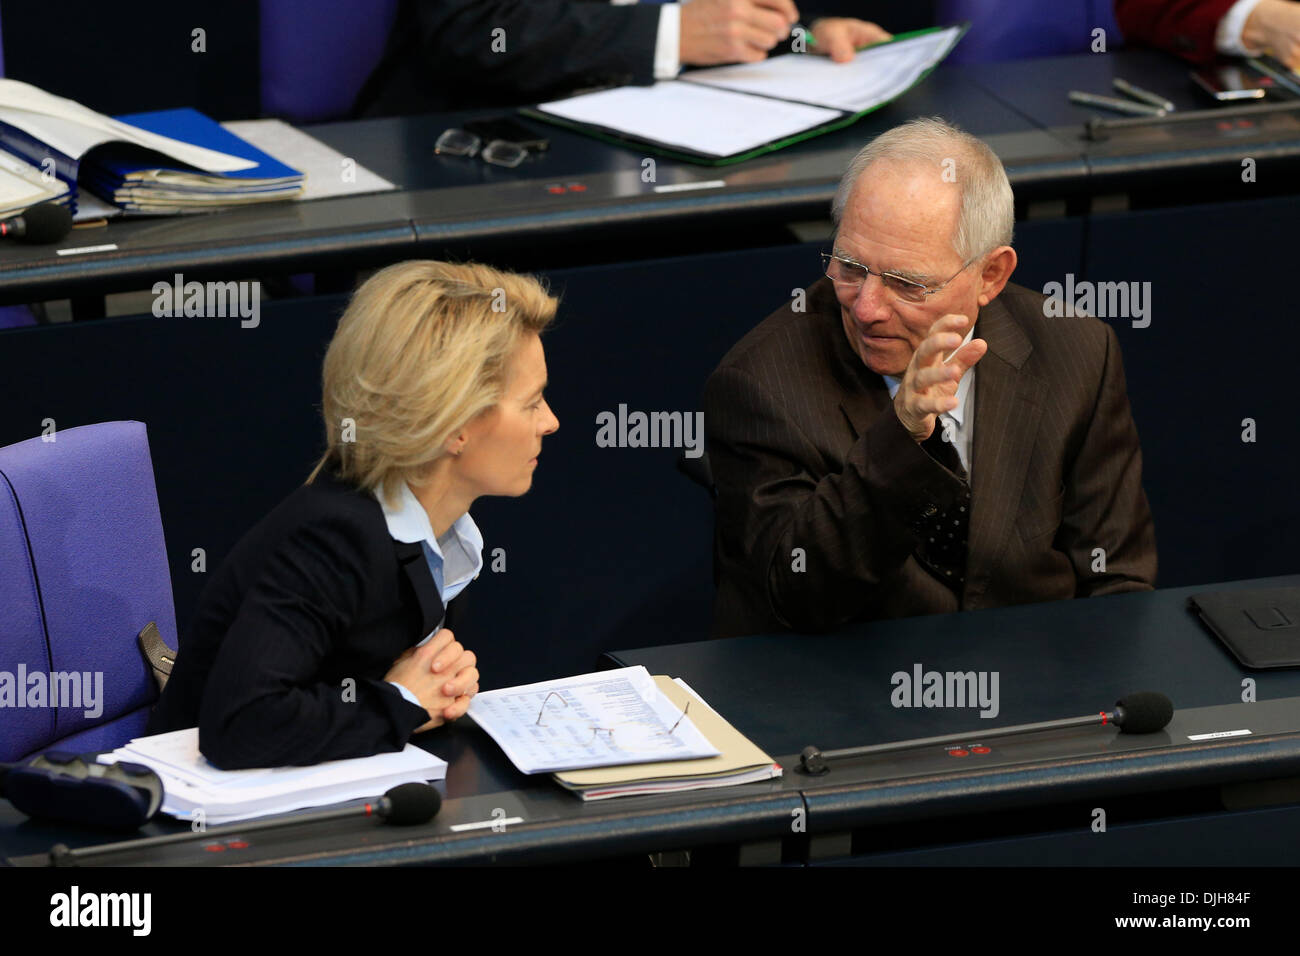 Berlin, Germany. November 28th, 2013. 3. Plenary session (Militar Mission in Sudan) with participation of Chancellor Angela Merkel.  Ursula von den Leyen, Labor minister and Wolfgang Schaeuble (CDU), German Finance Minister. Credit:  Reynaldo Chaib Paganelli/Alamy Live News - Stock Image